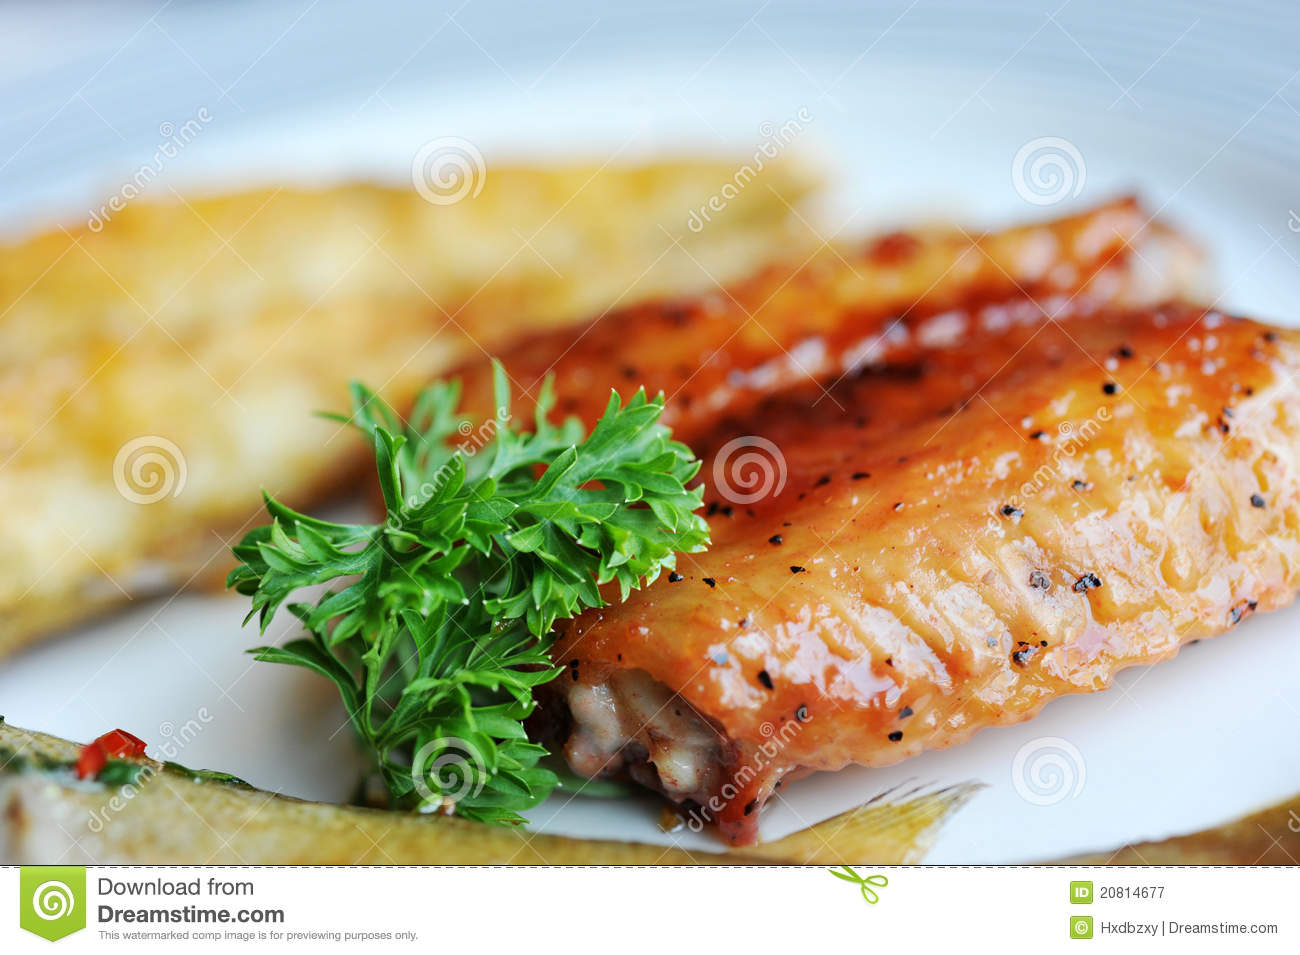 Chicken wings royalty free stock photography image 20814677 for Wings and fish